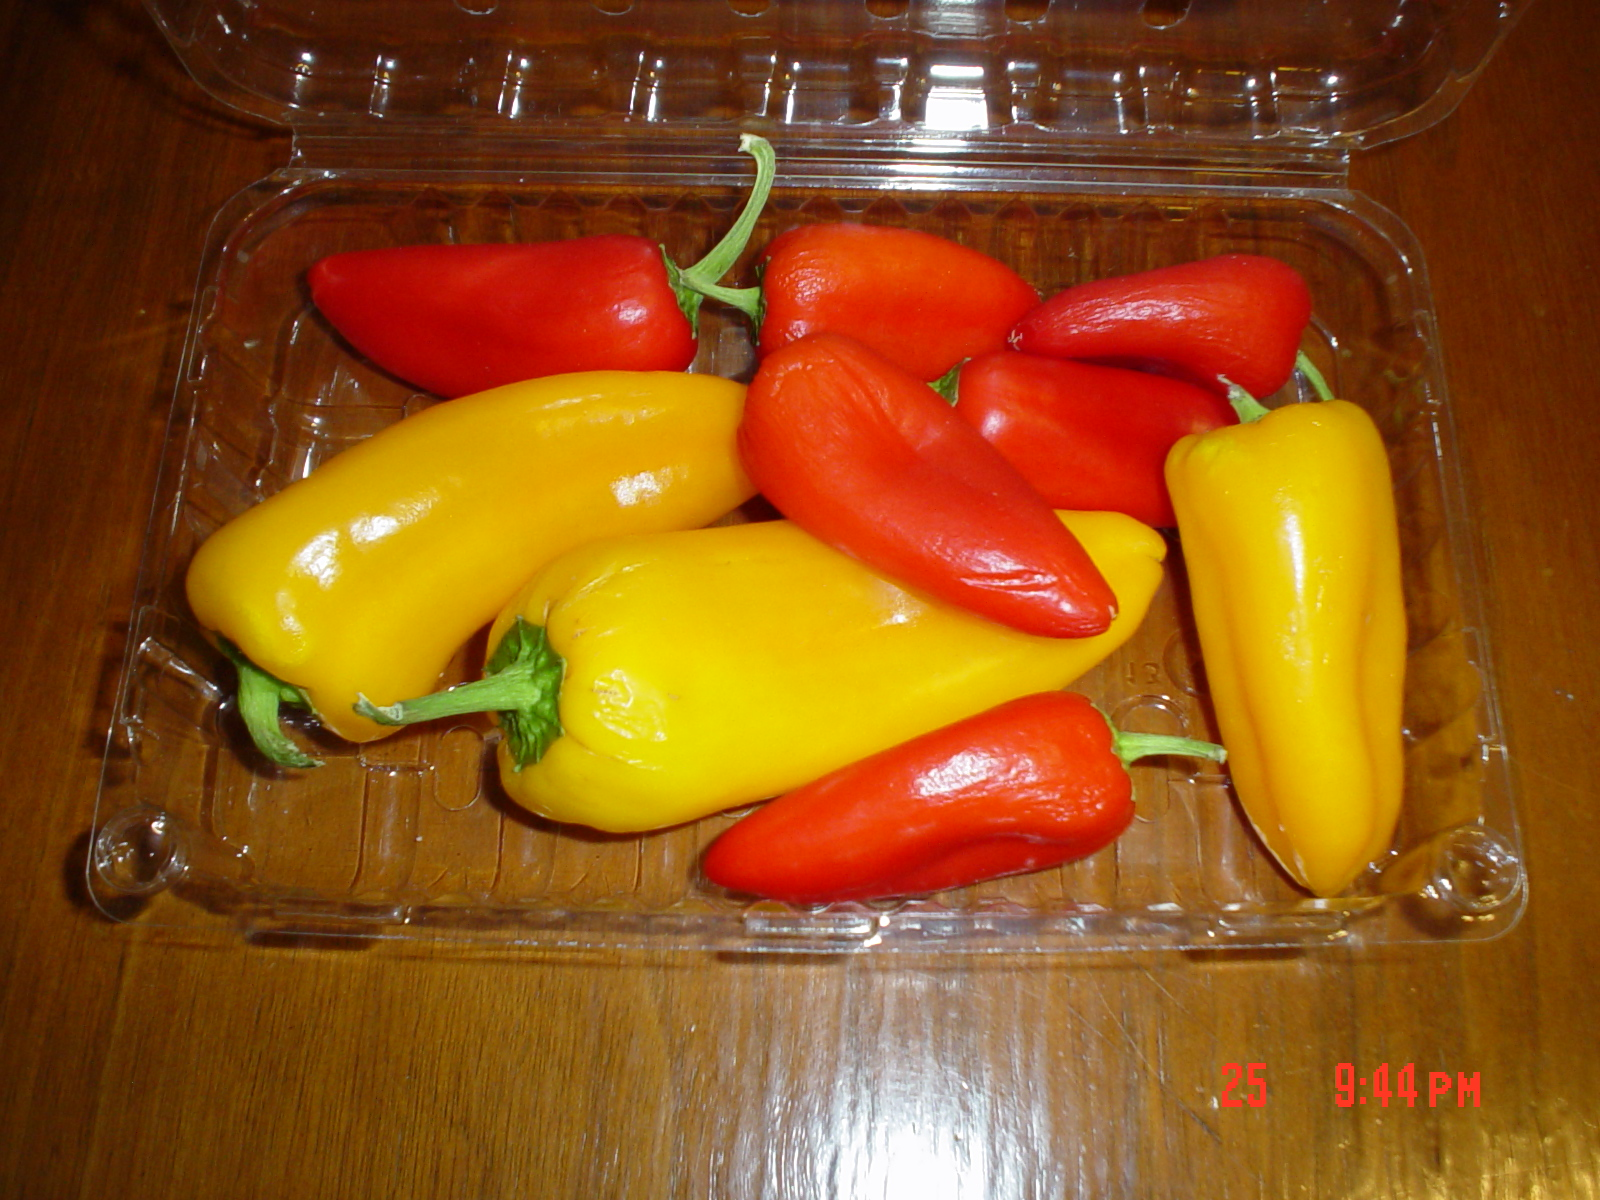 Though not essential, pimentos can add both color and flavor to a sauce, and the smaller kind are cheap.